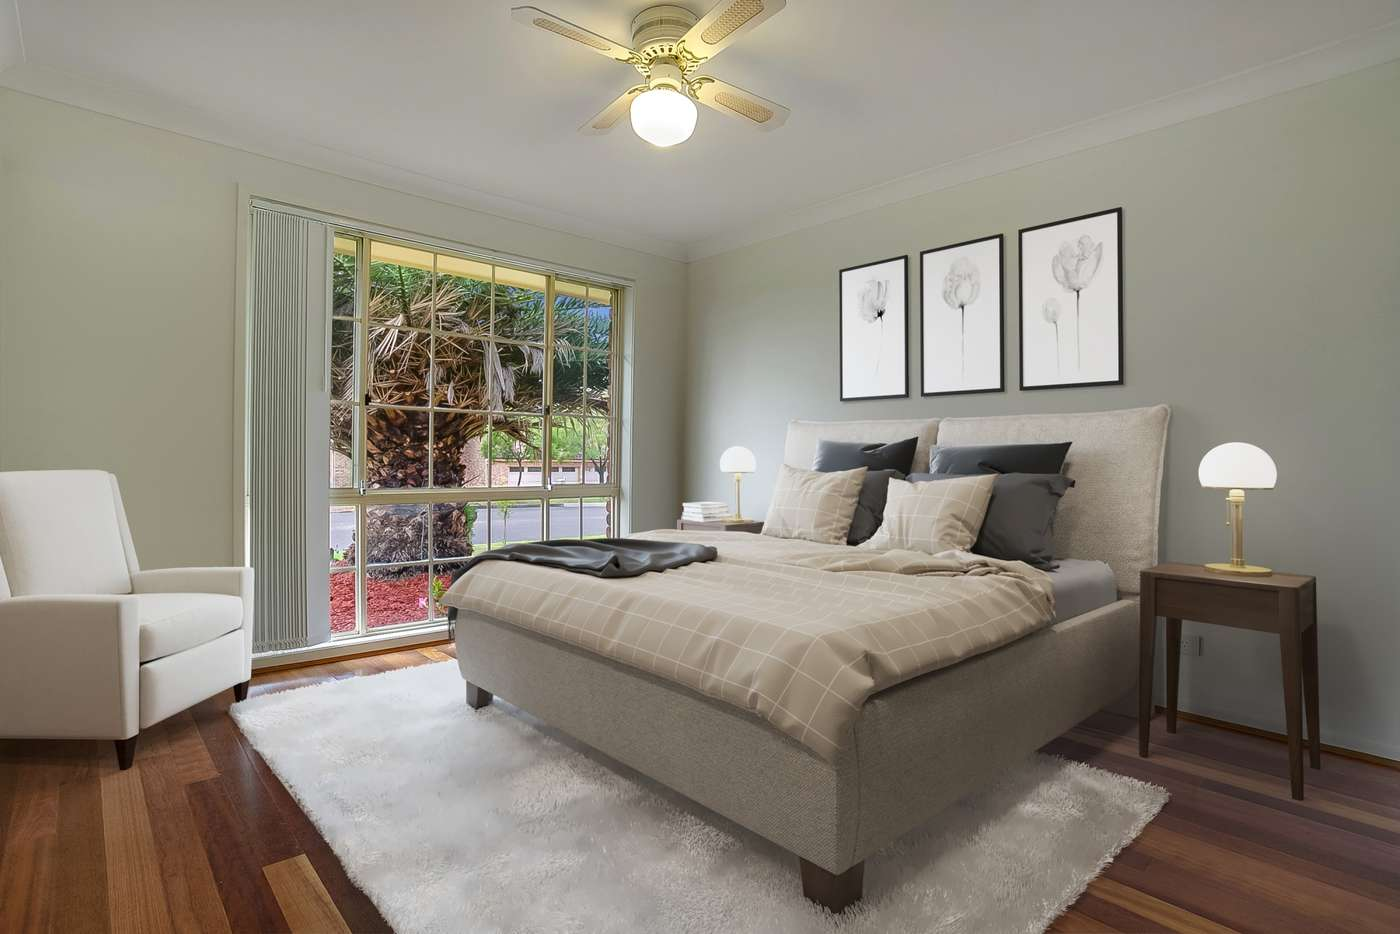 Sixth view of Homely house listing, 25 Darling Street, Abbotsbury NSW 2176